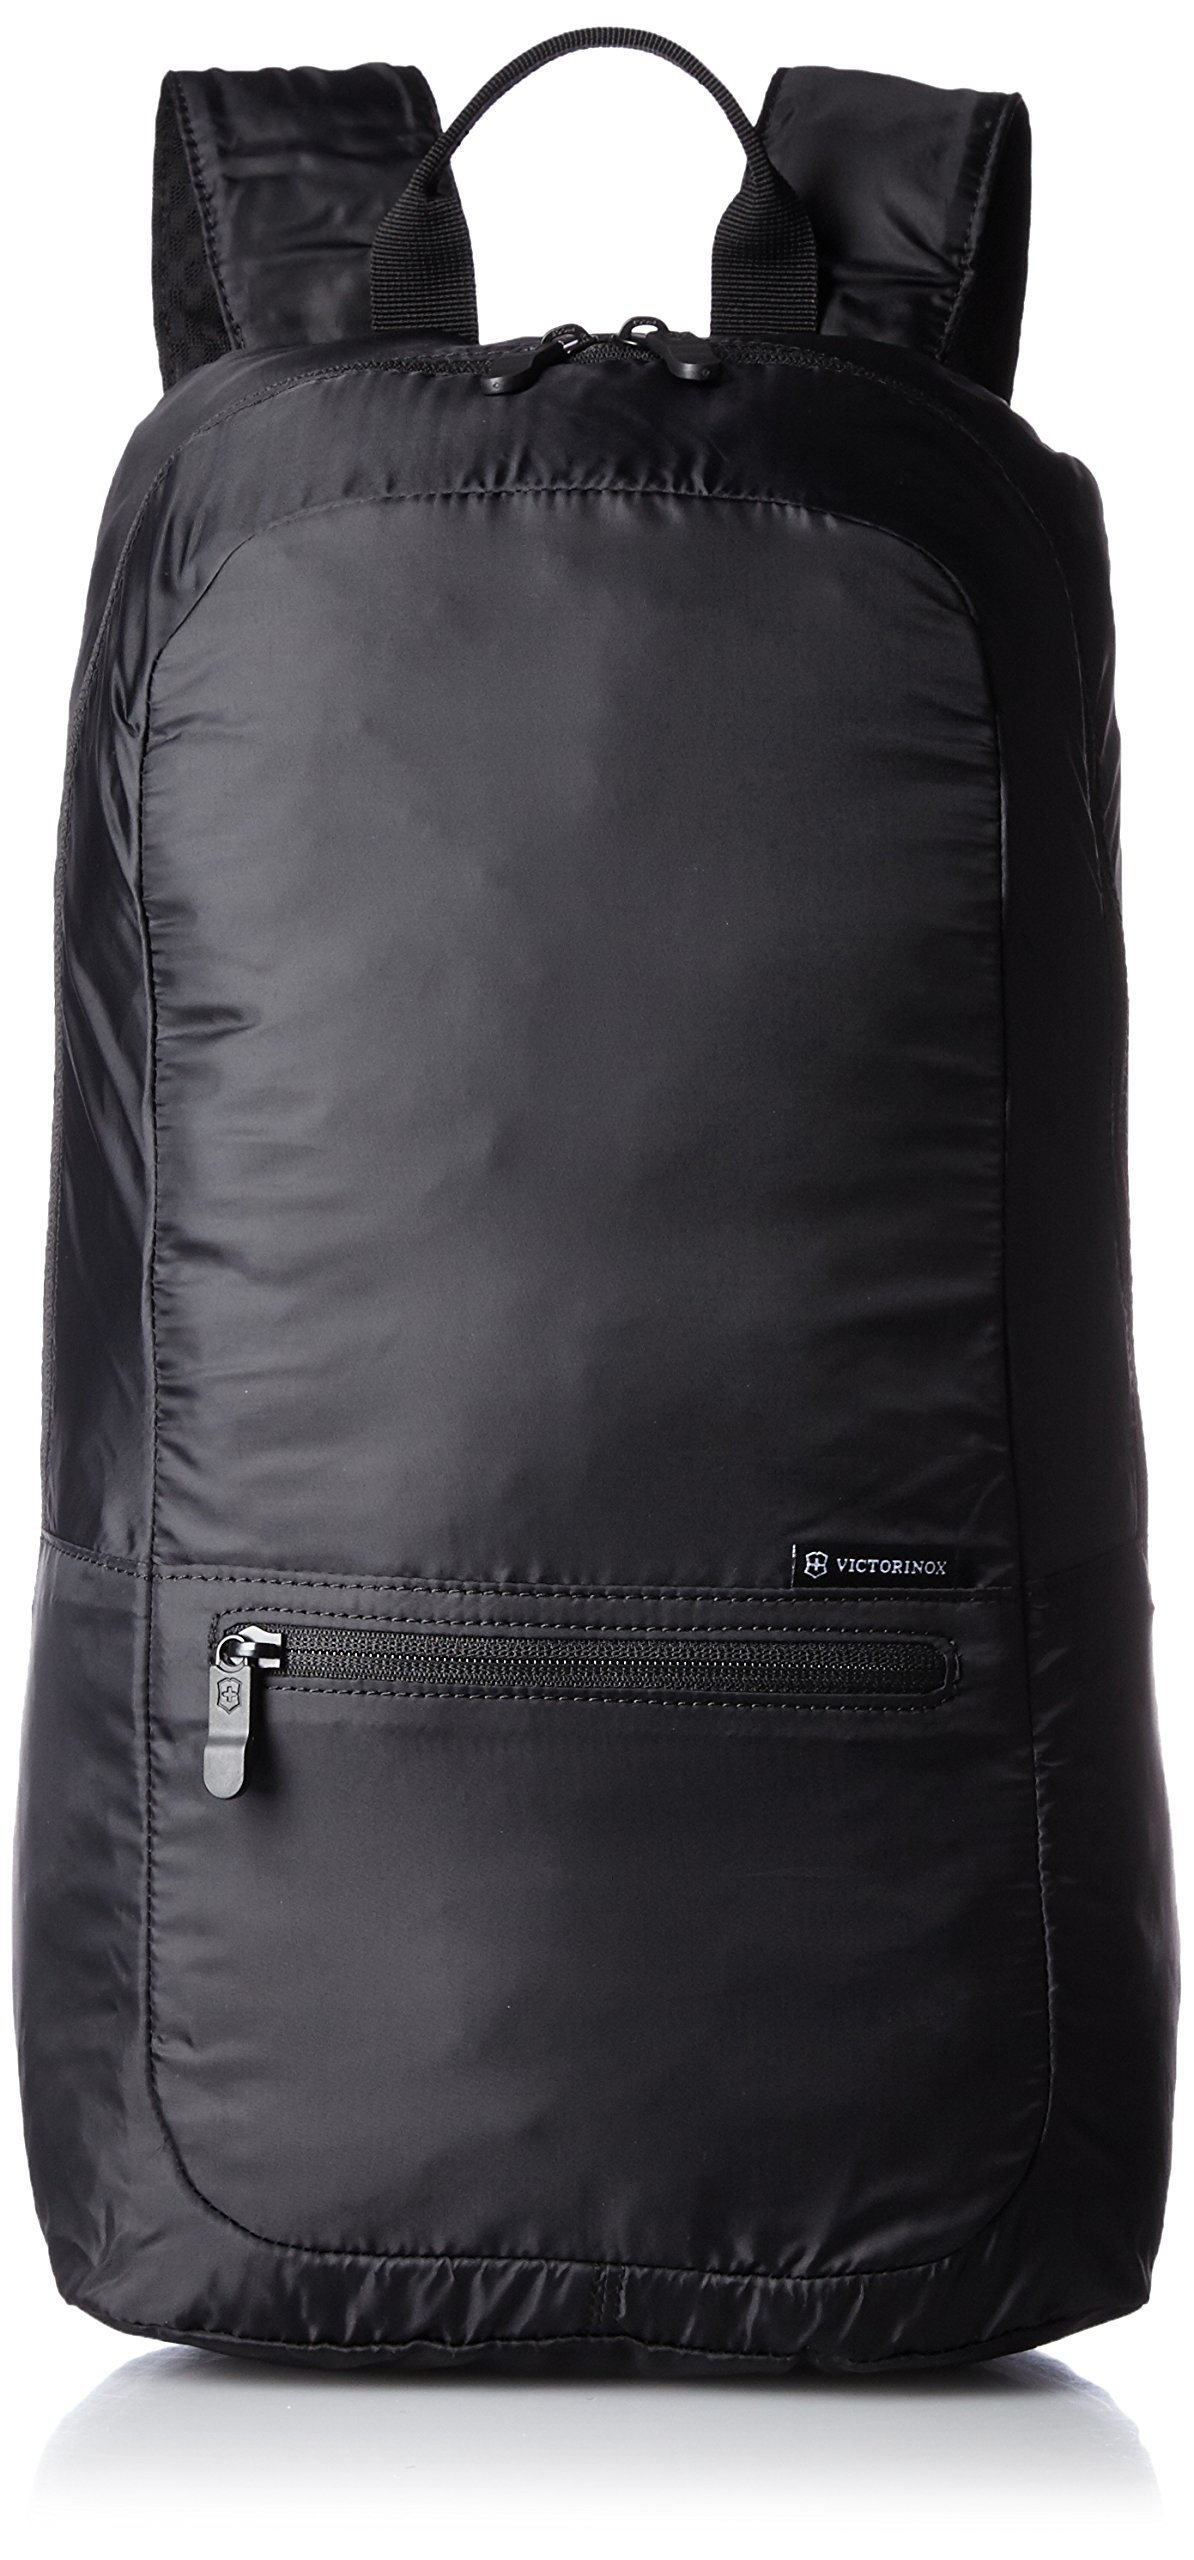 Victorinox Packable Backpack, Black, One Size